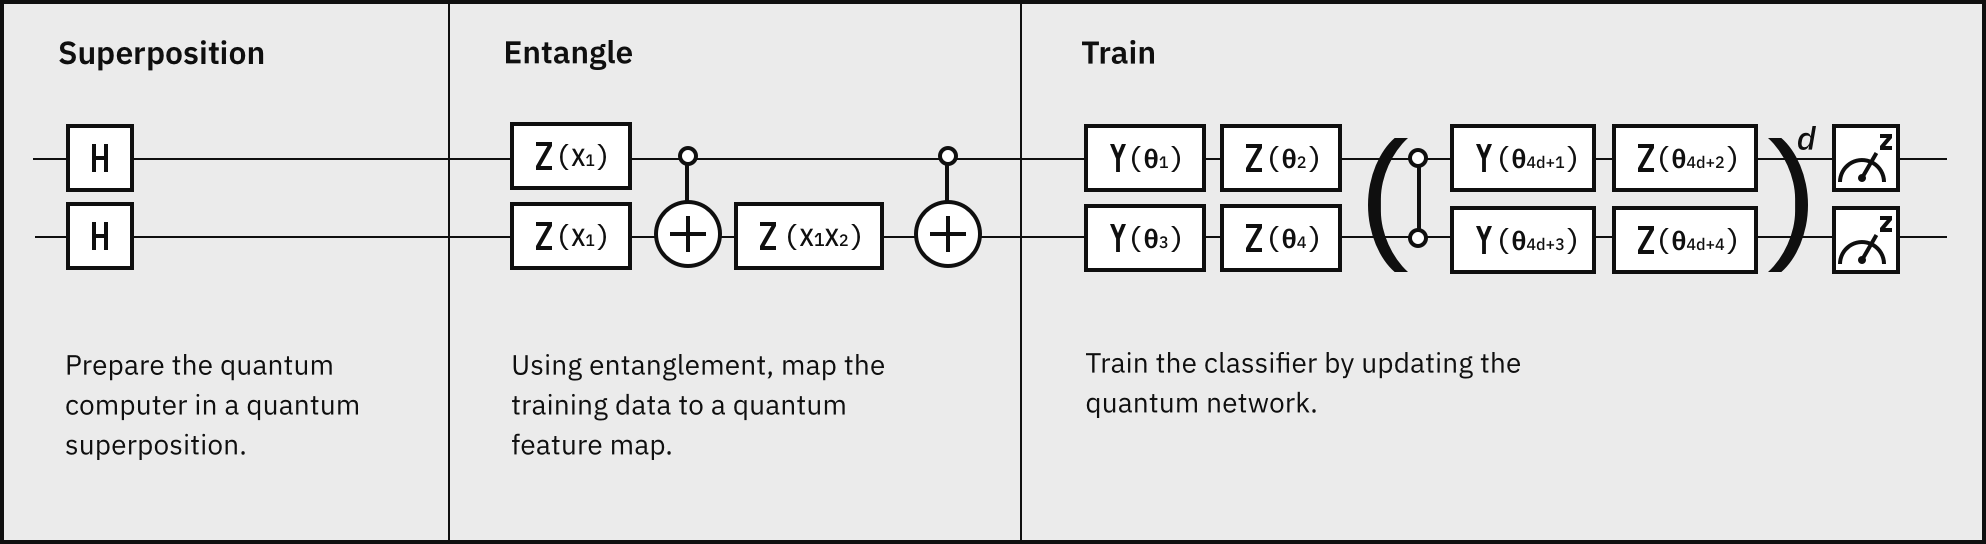 hight resolution of the classifiers in this demo use quantum properties to identify and sort data into categories we represent these classifiers with a circuit diagram